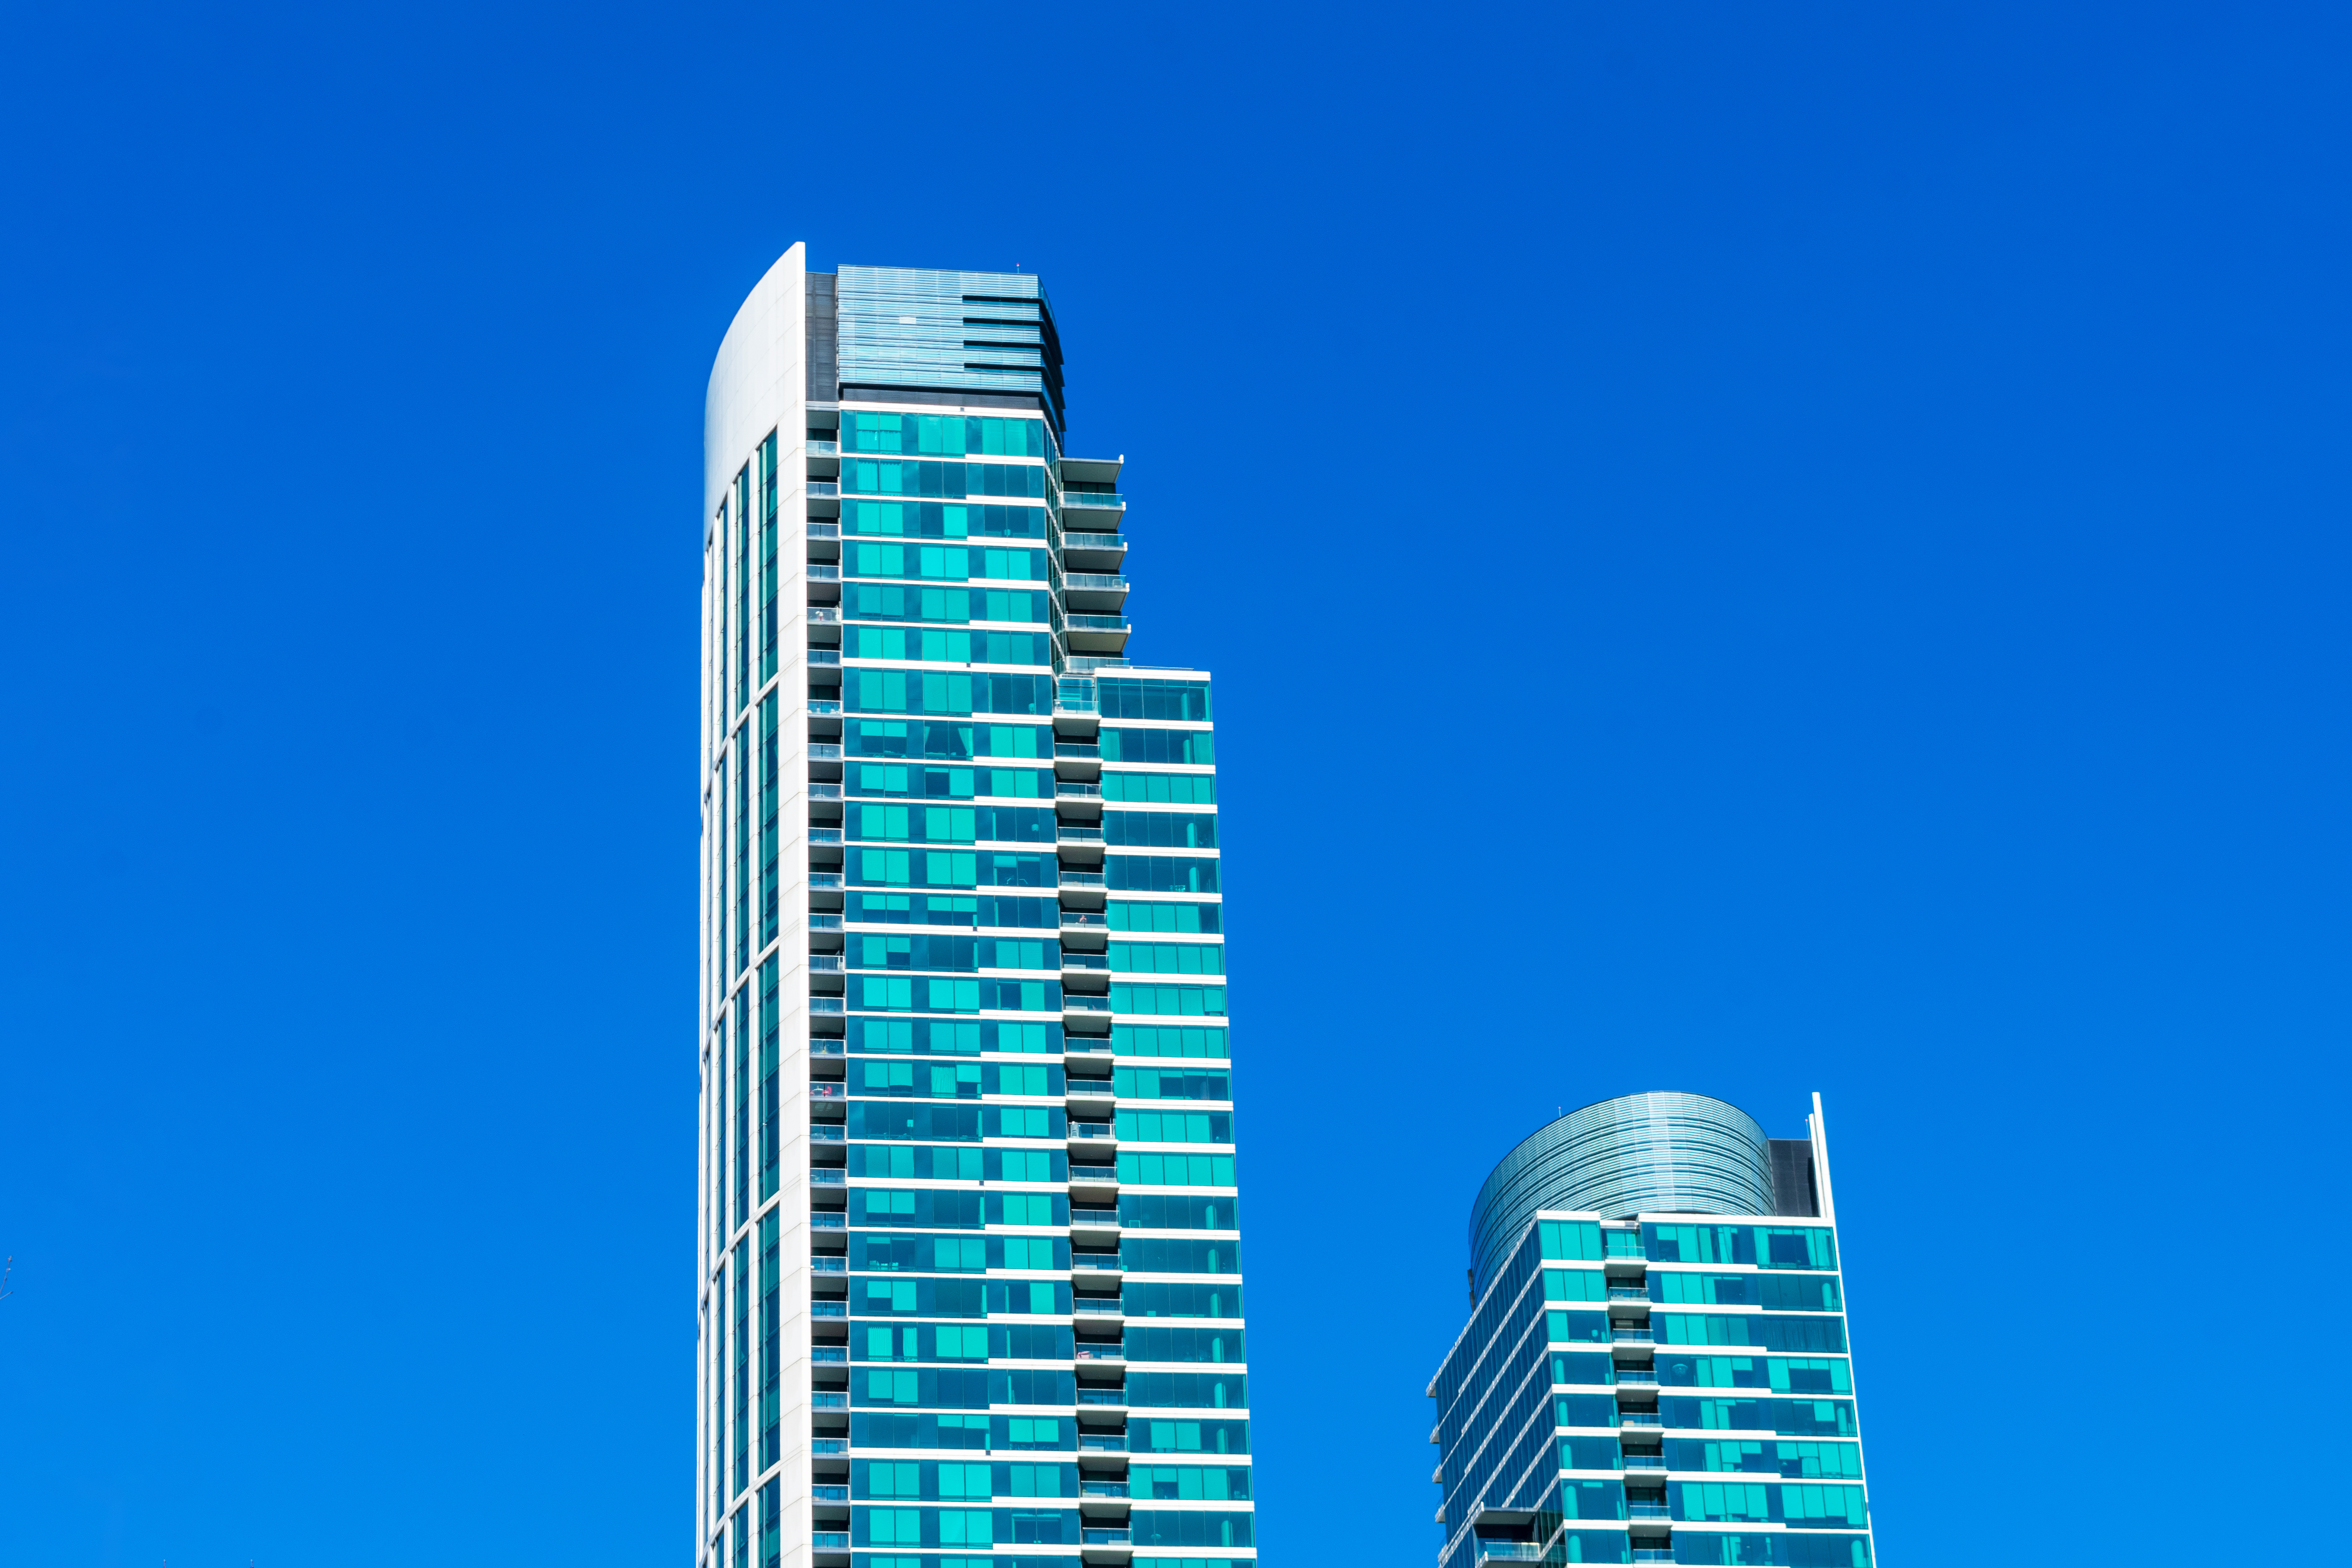 Two glassy, blue towers against a blue sky.